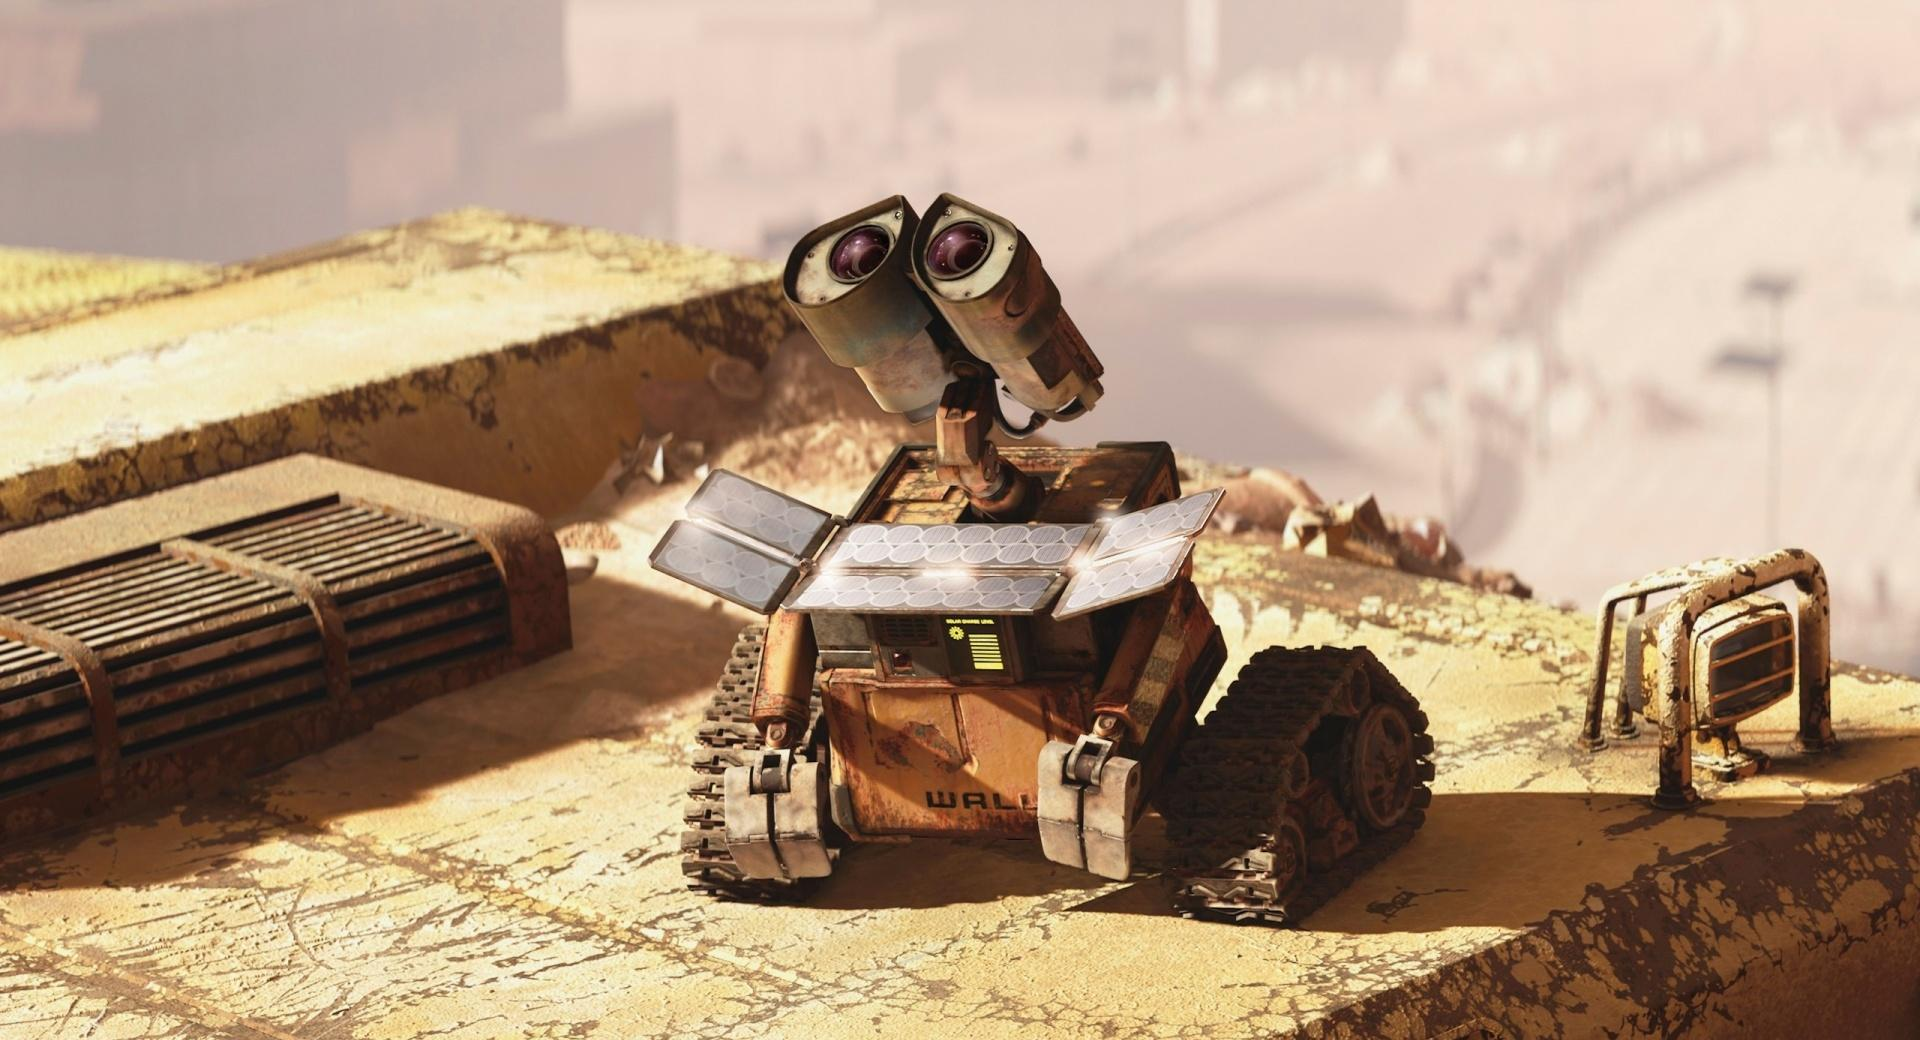 Wall E Looking Up at 640 x 1136 iPhone 5 size wallpapers HD quality